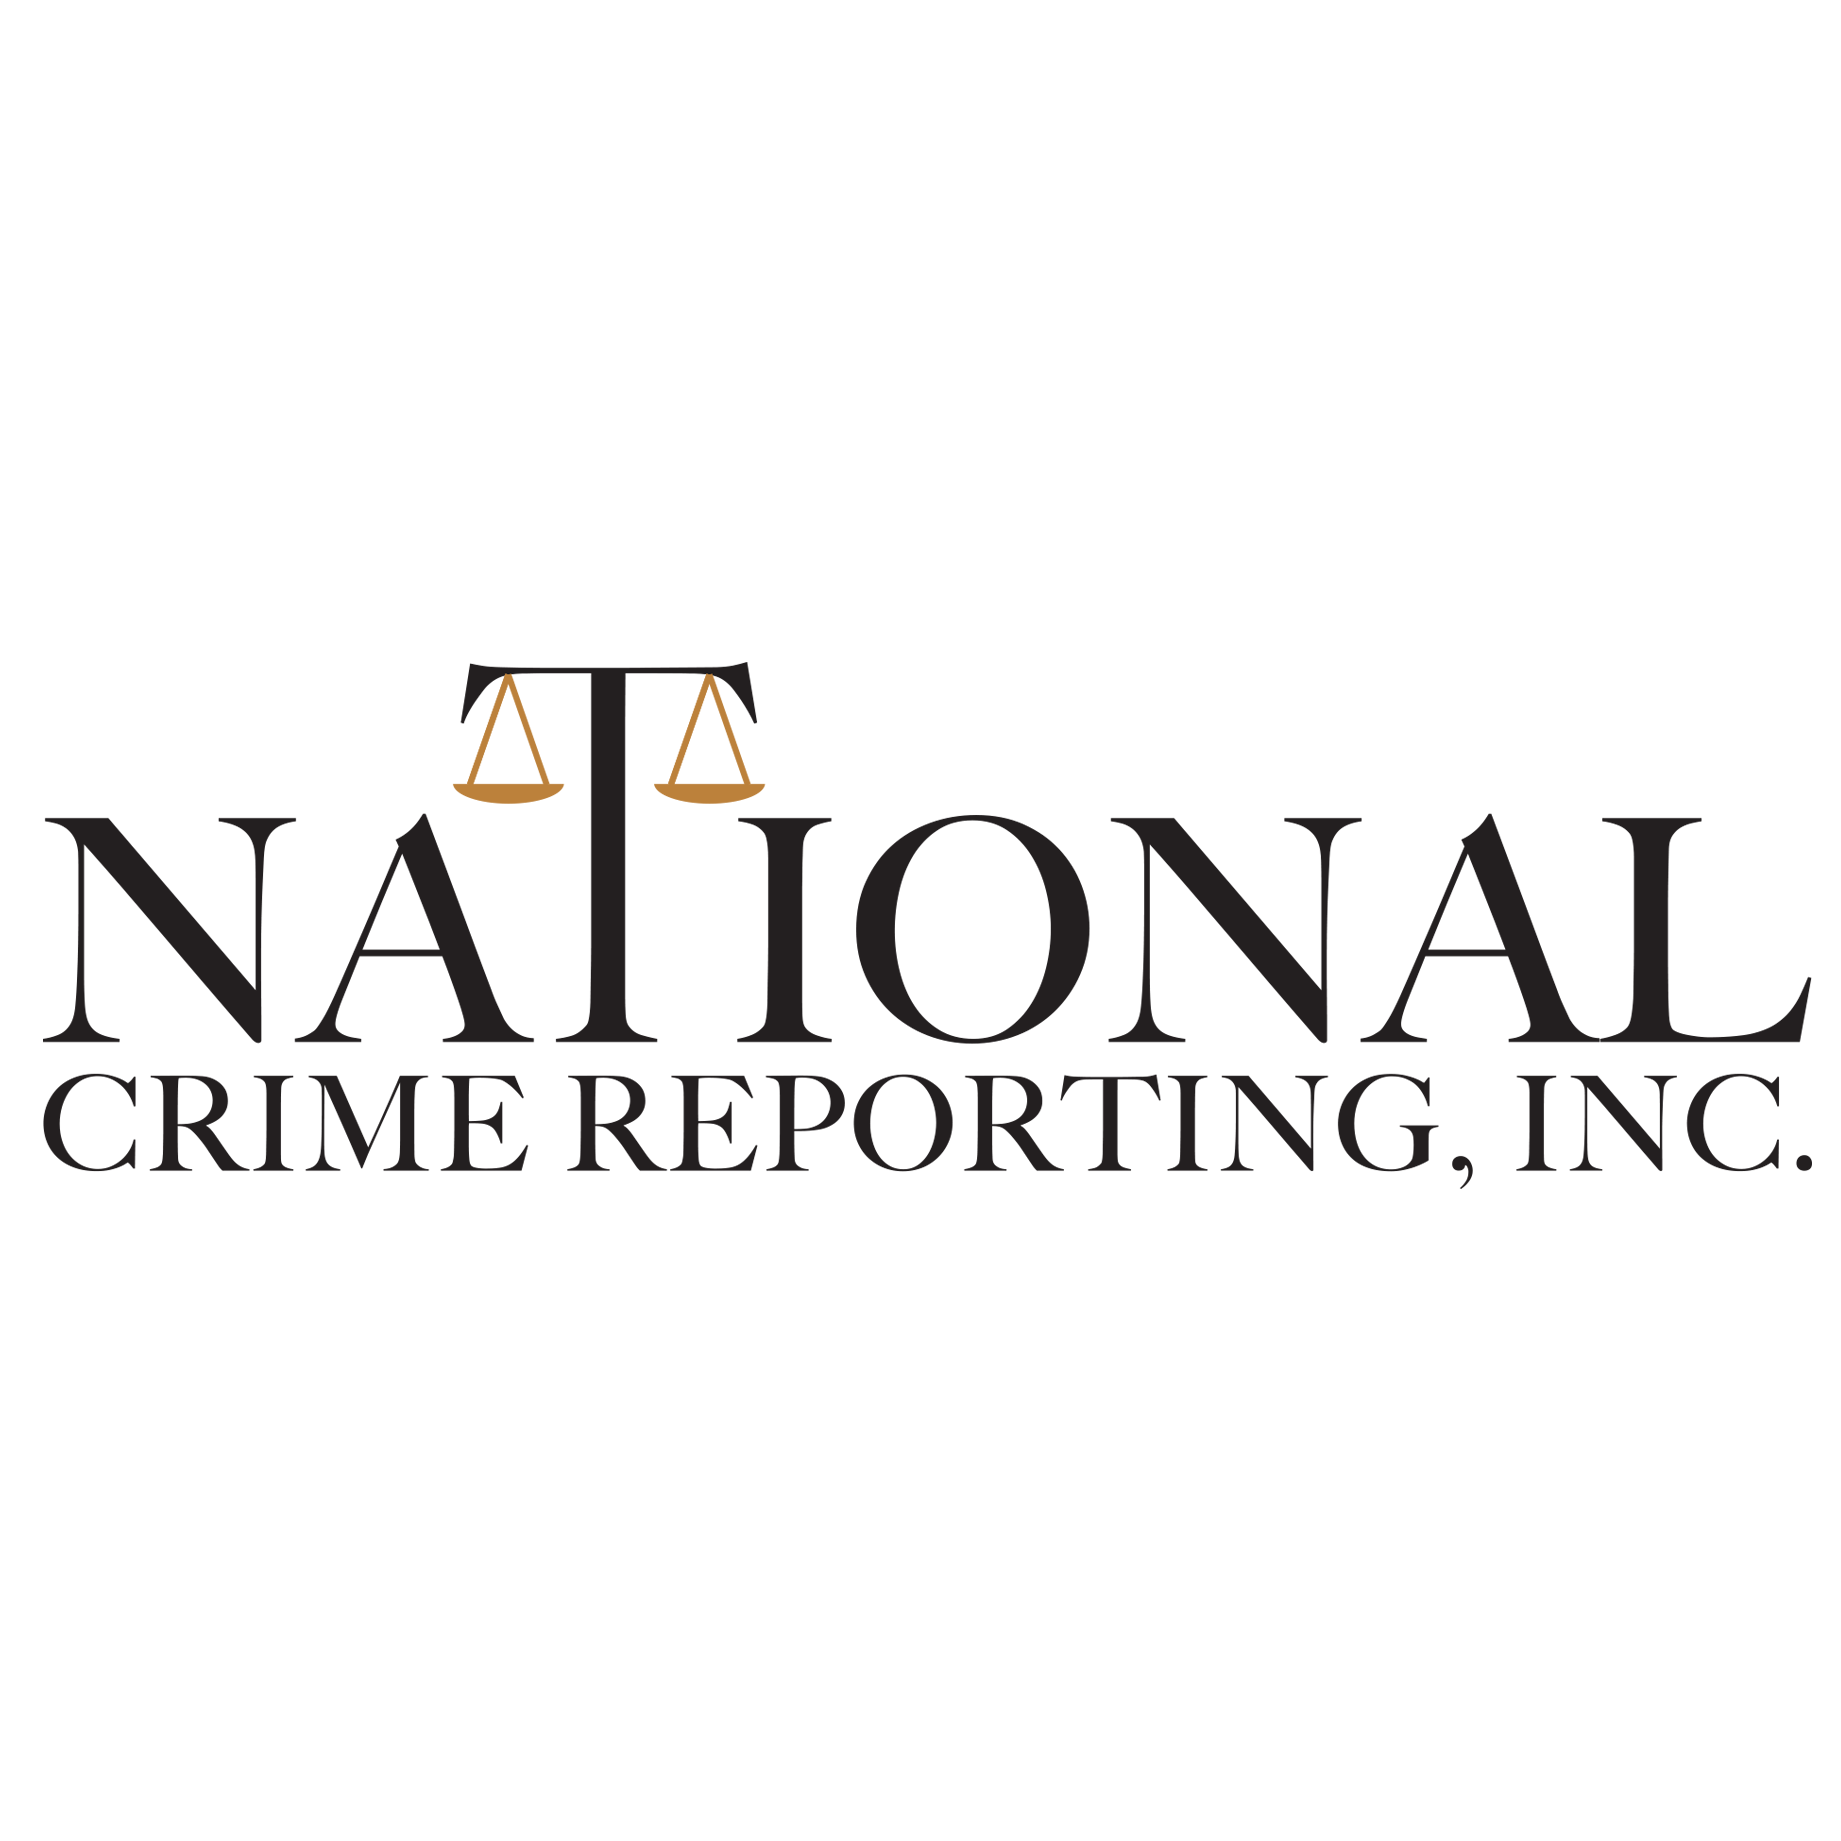 image of National Crime Reporting